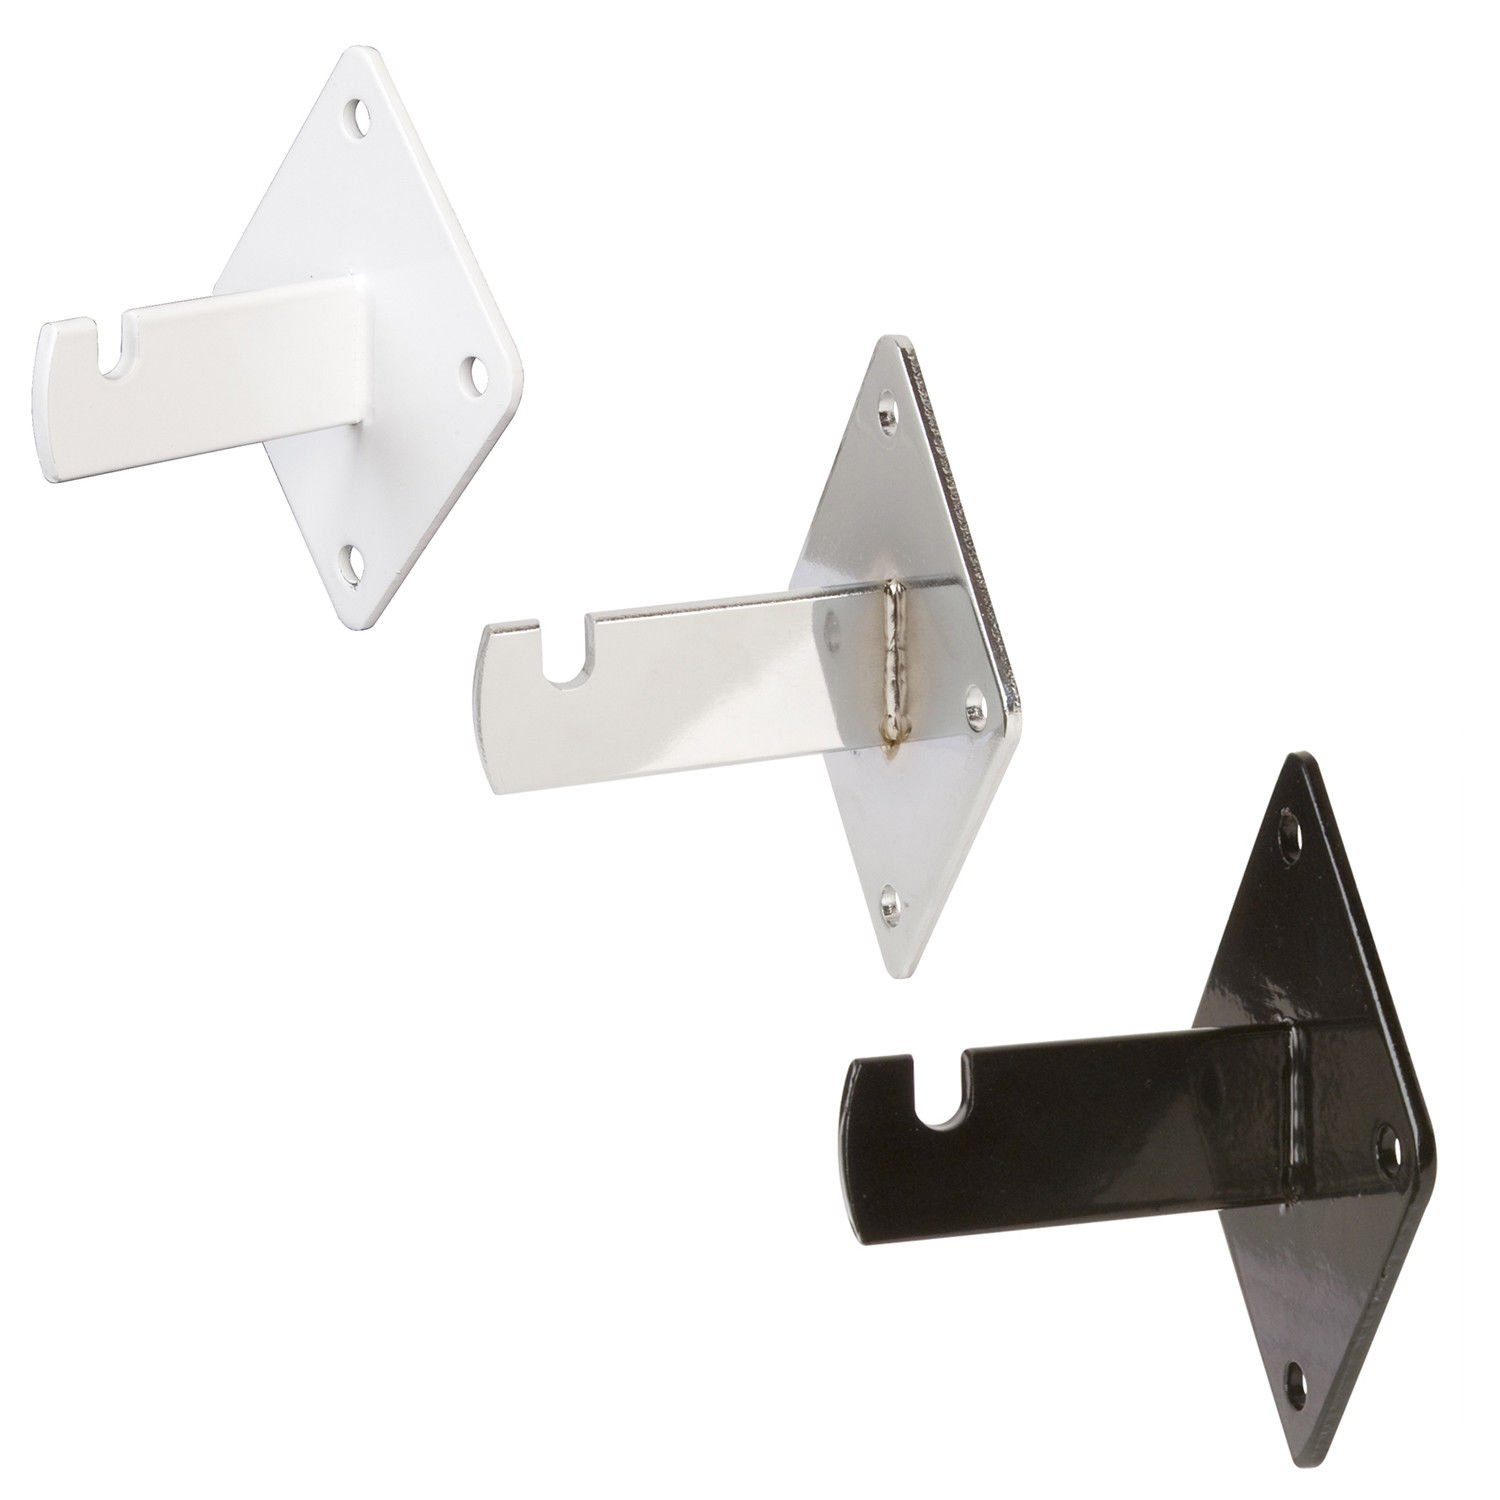 Gridwall Wall Mount Brackets - Heavy Duty Grid Panel Mounting Hangers - 40 Pack - White